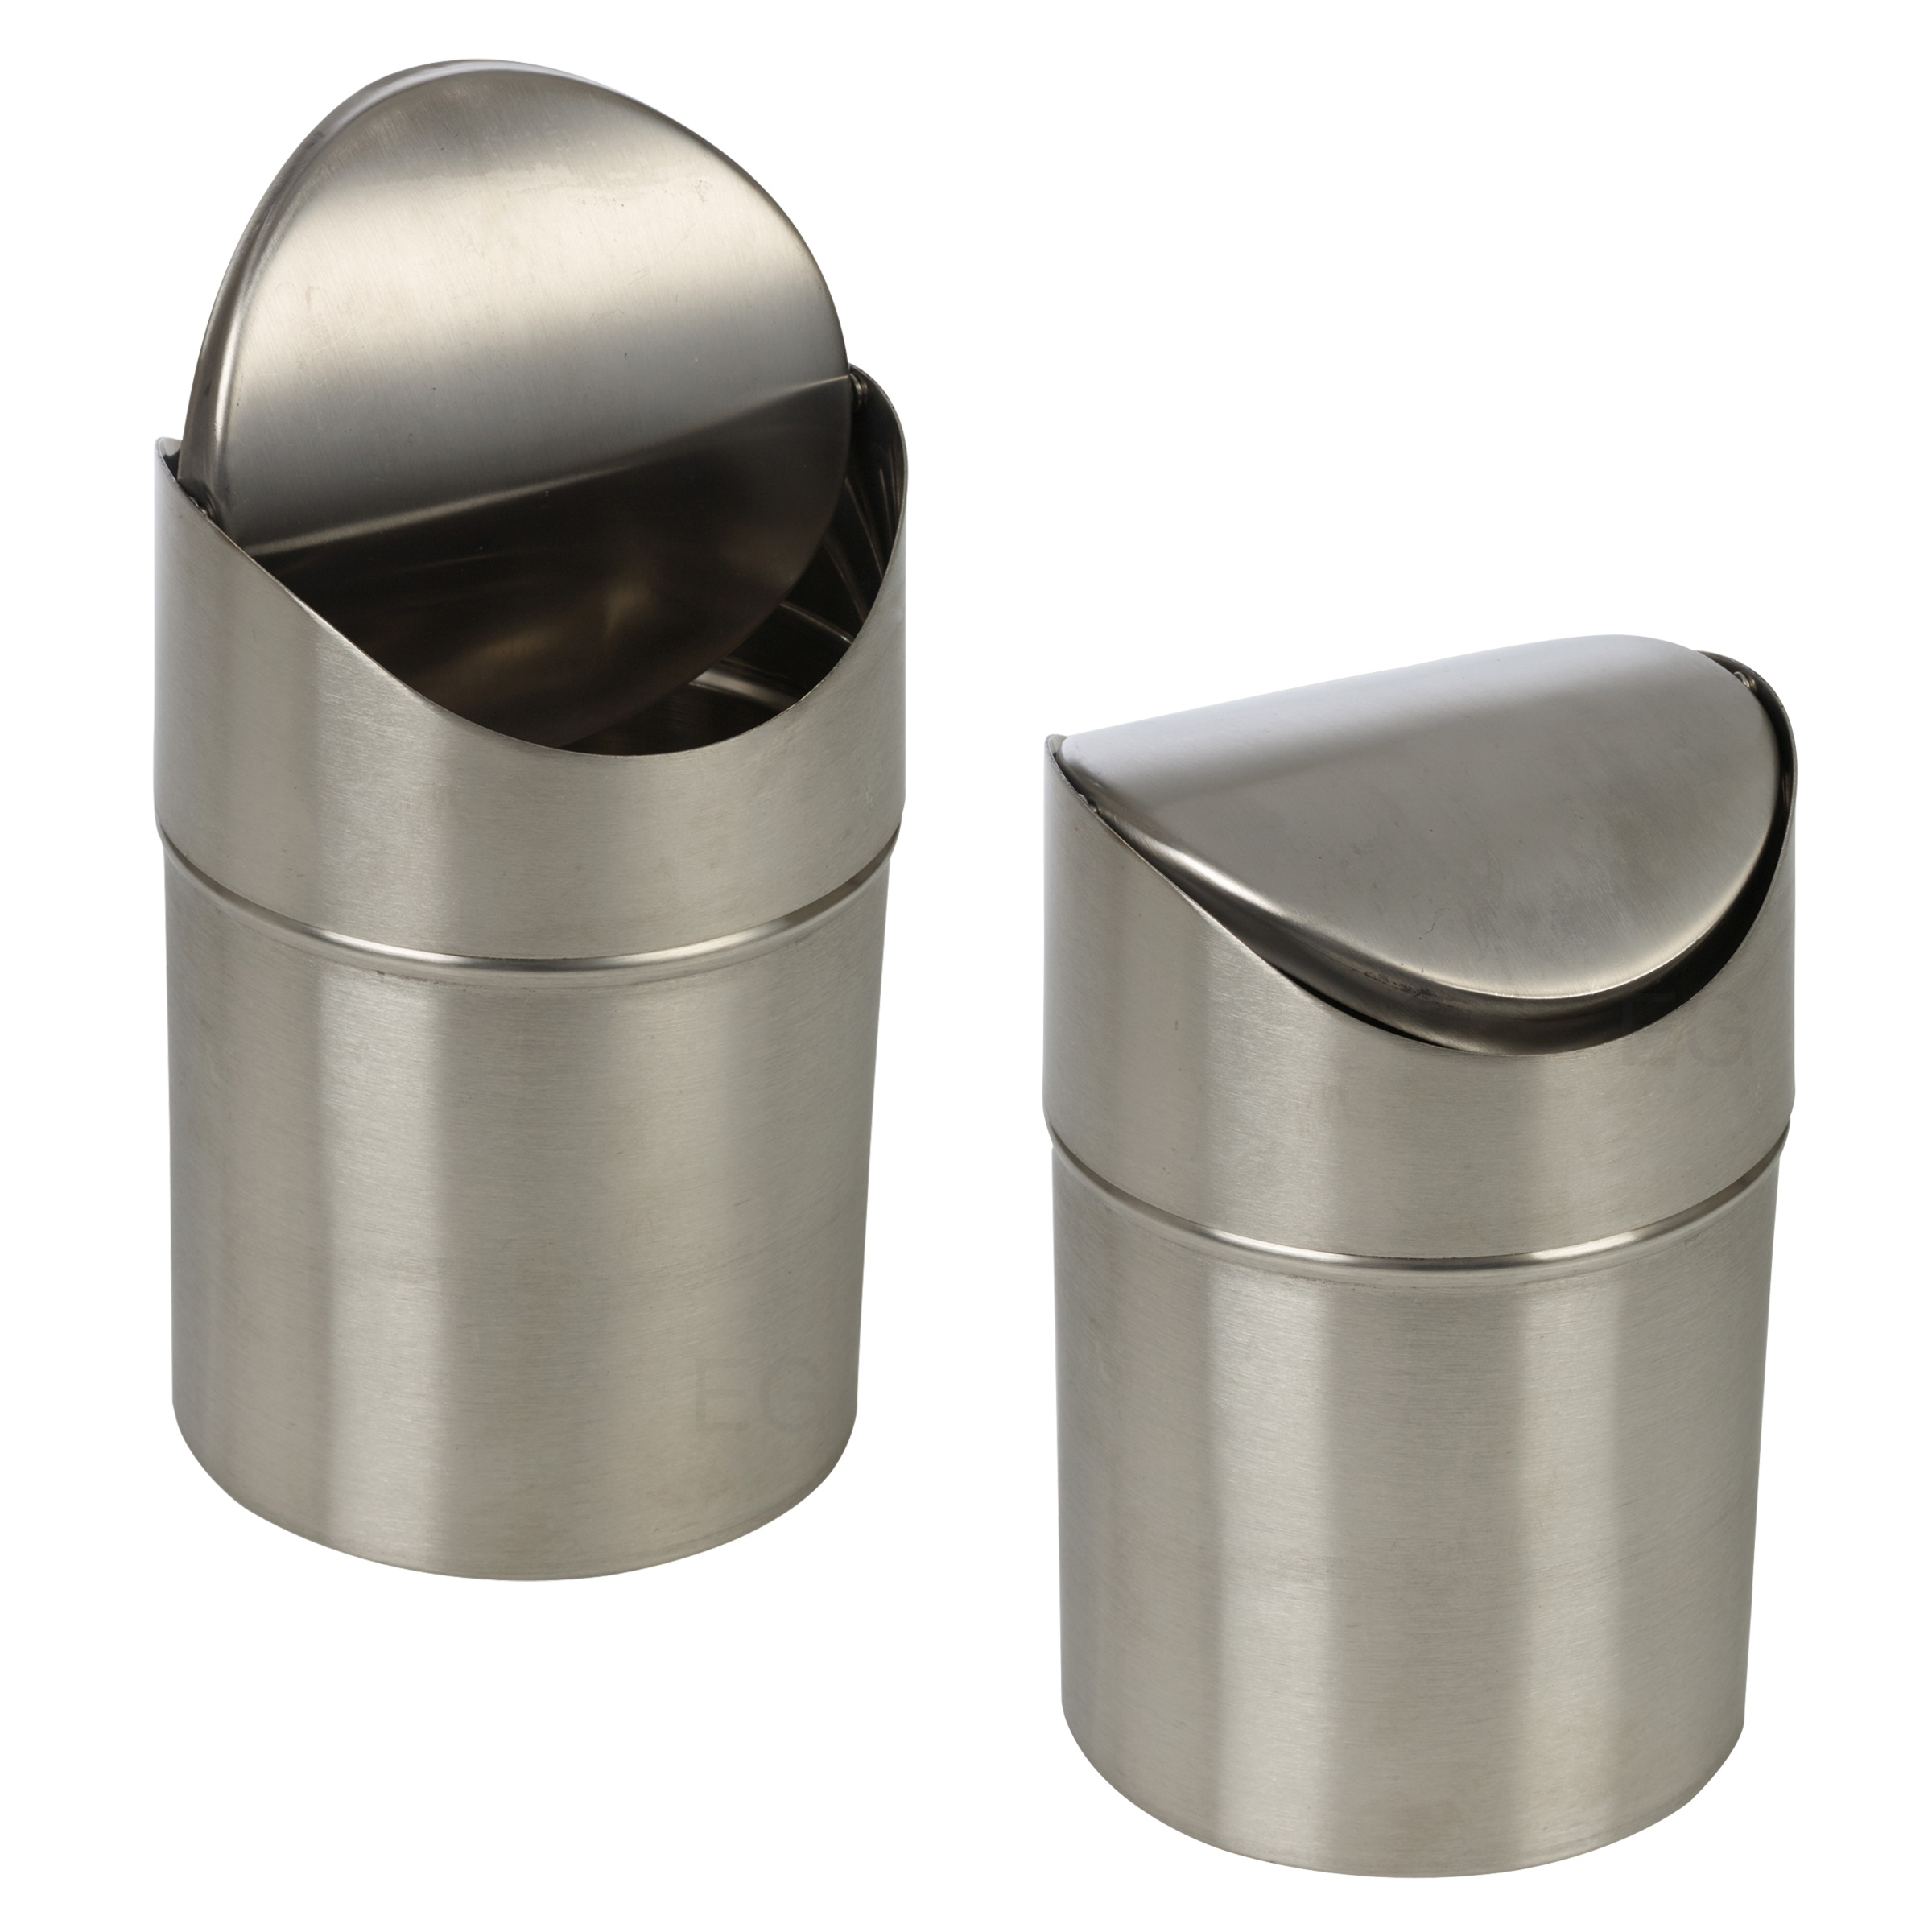 Designer Bathroom Bins modern bathroom wastebasket